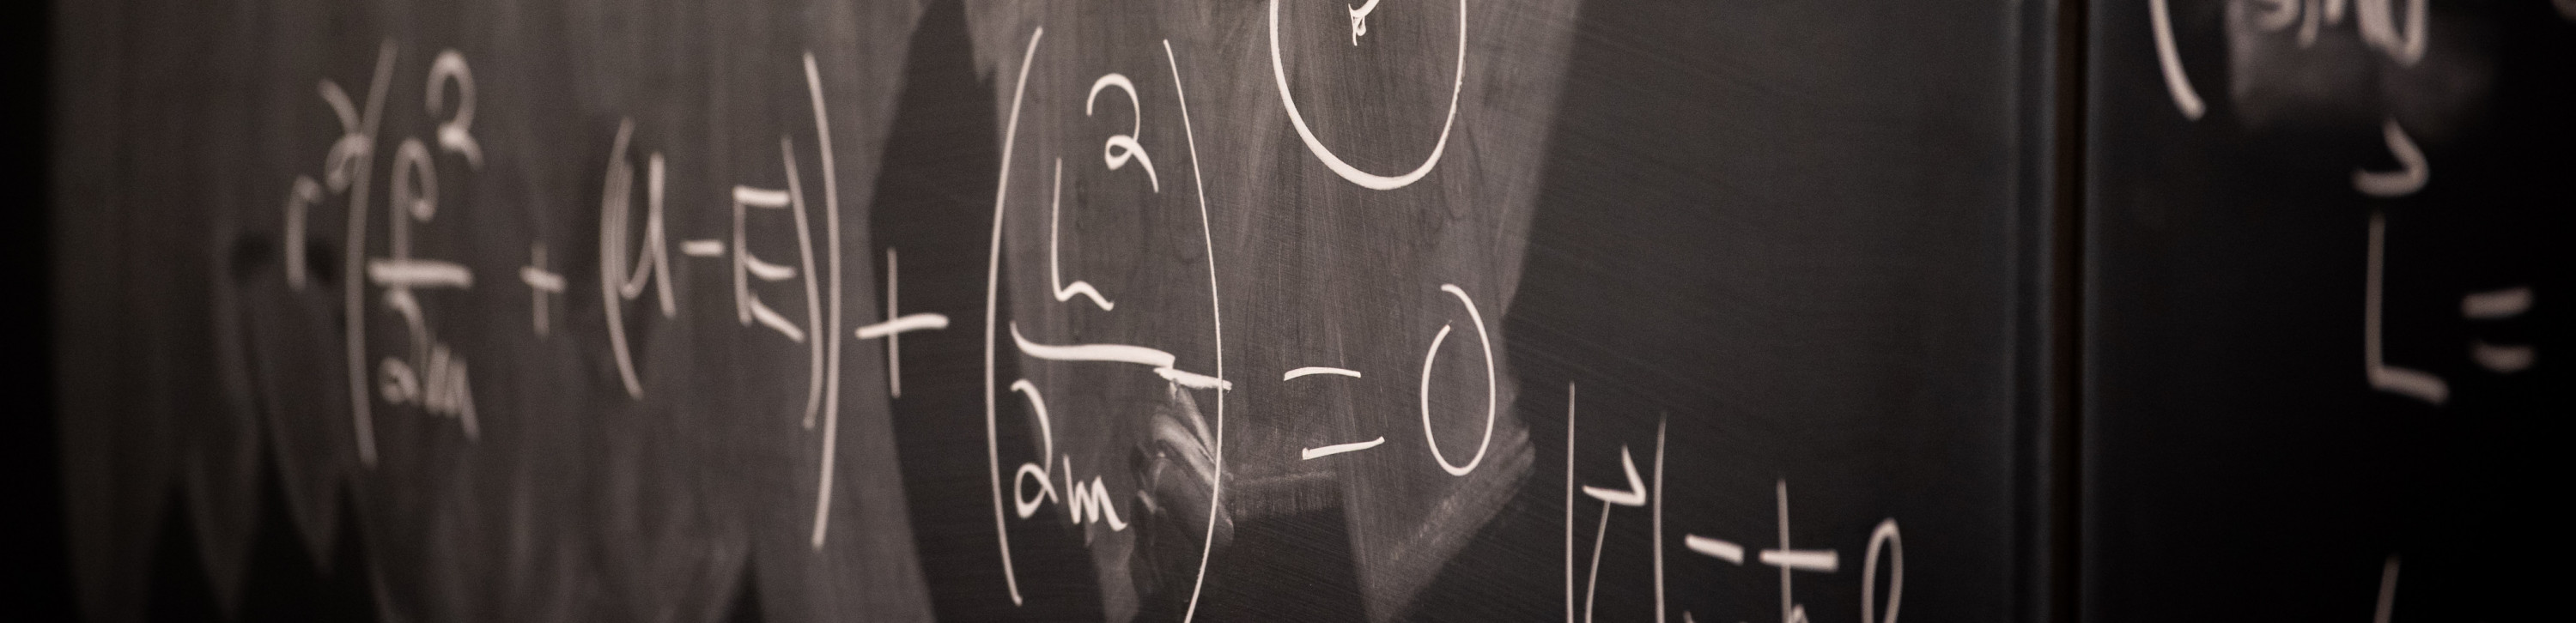 chalkboard with mathematical equation